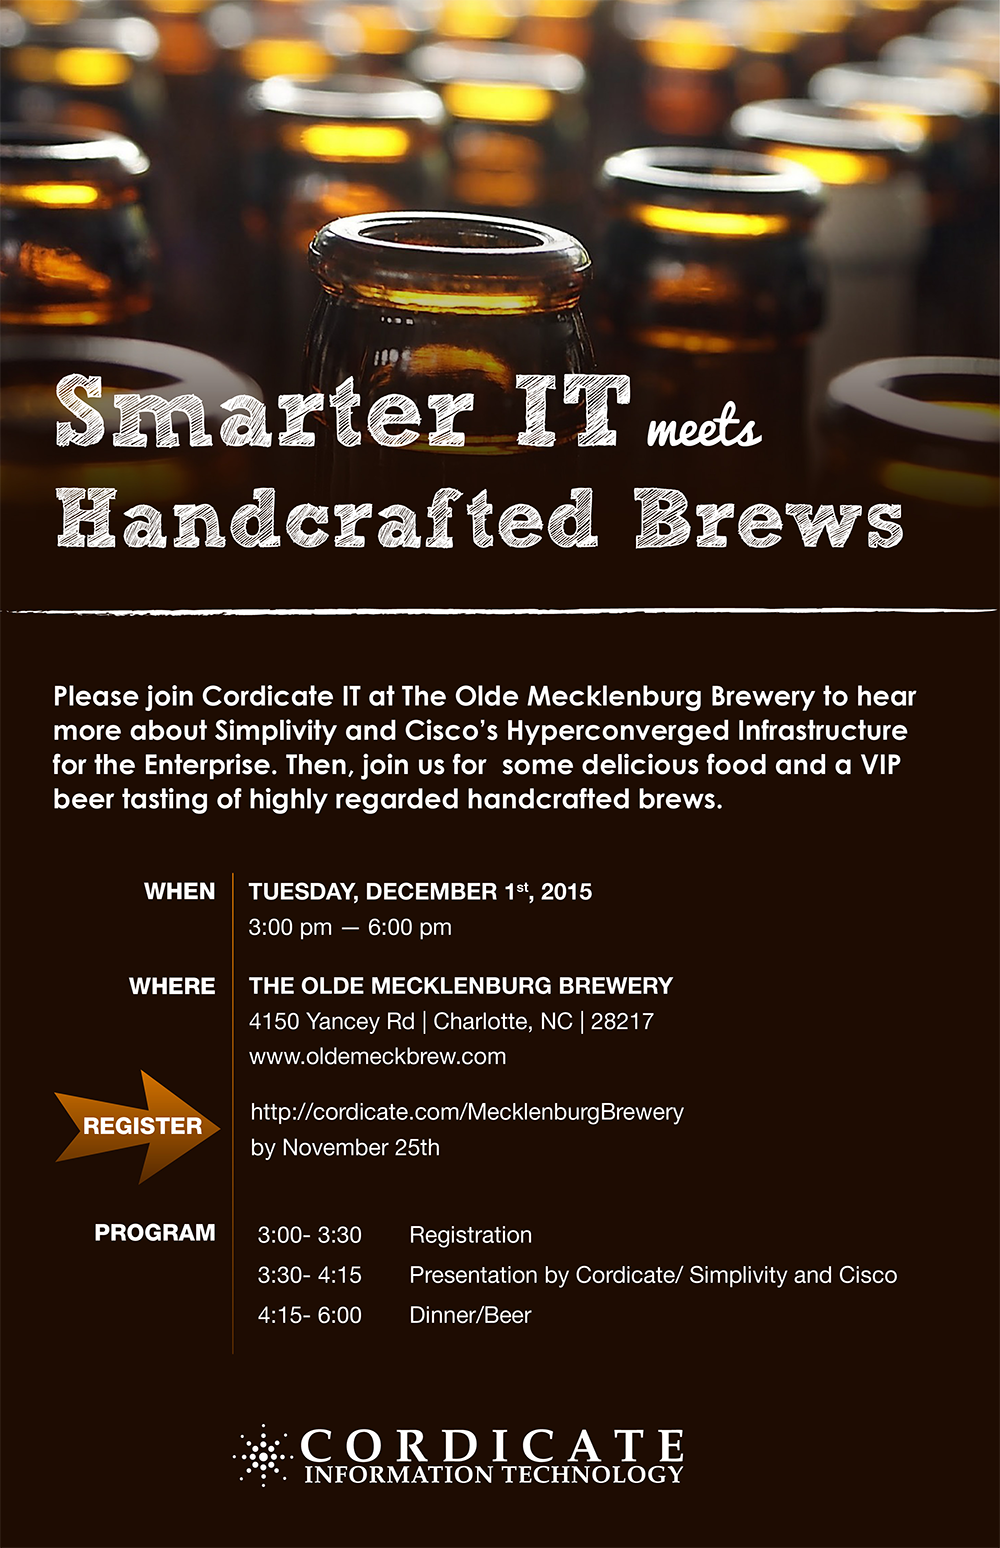 The Olde Mecklenburg Brewery | Smarter IT meets Handcrafted Brews